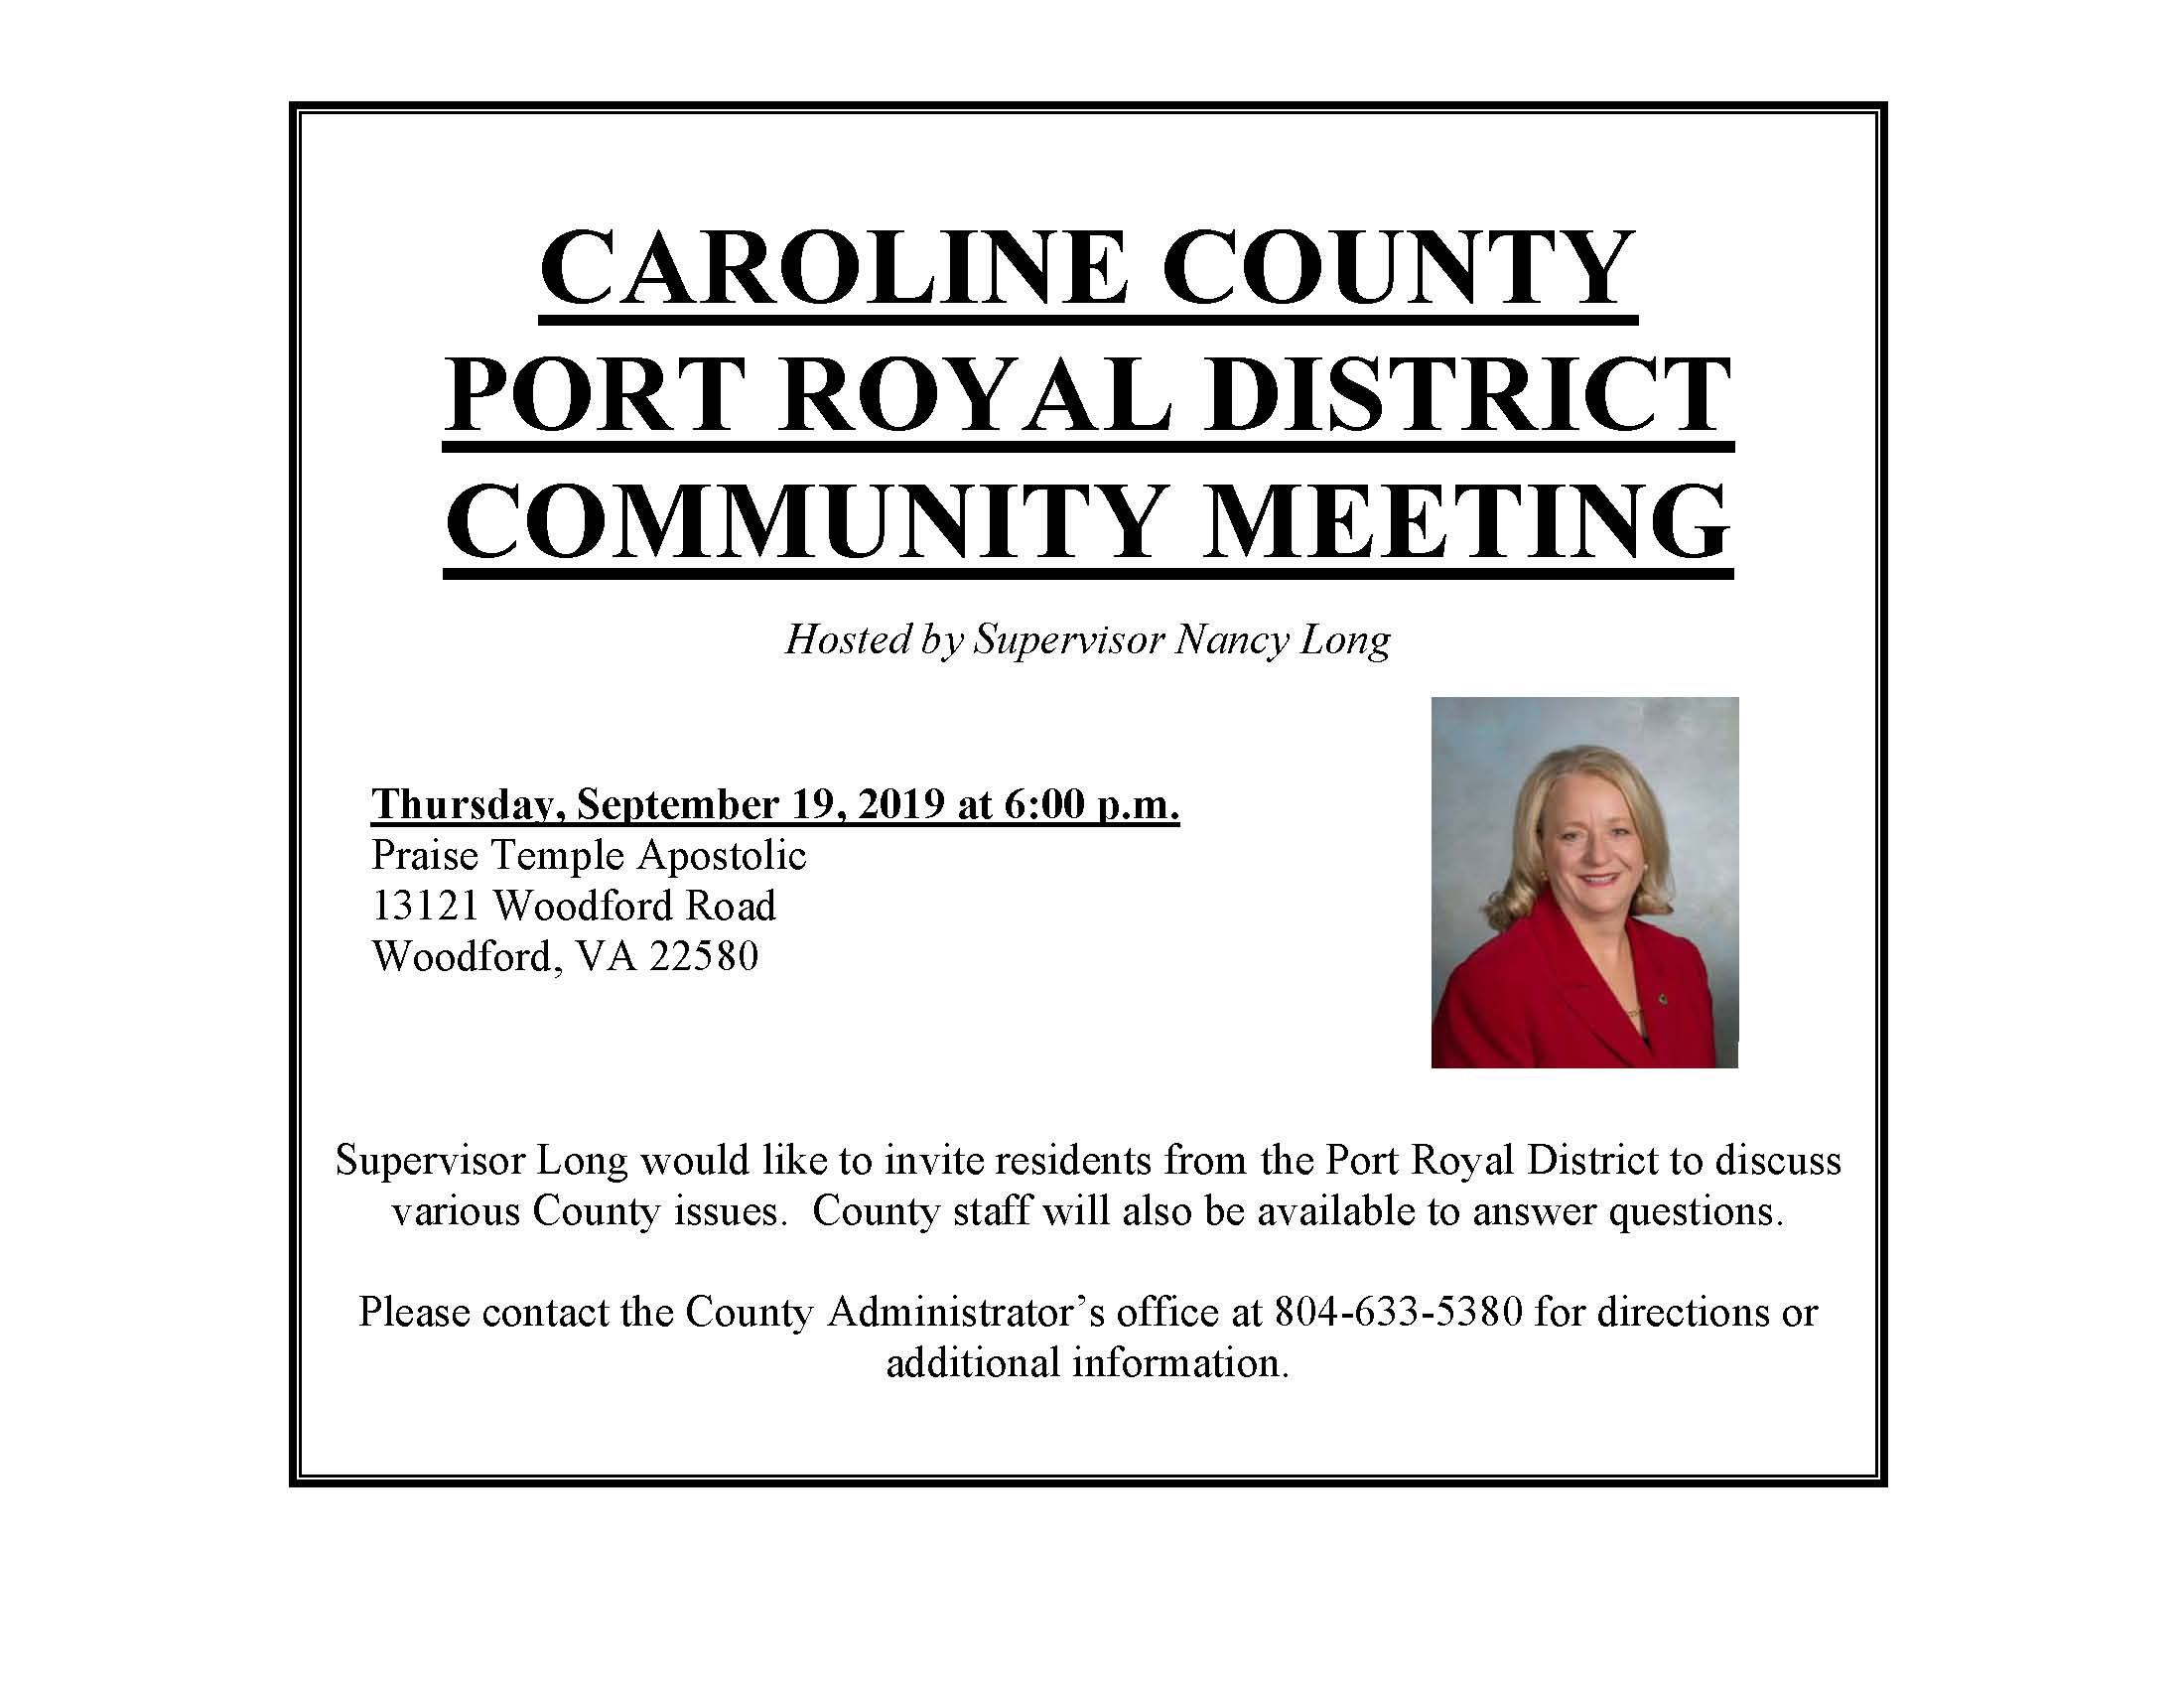 Port Royal District Community Meeting September 19, 2019